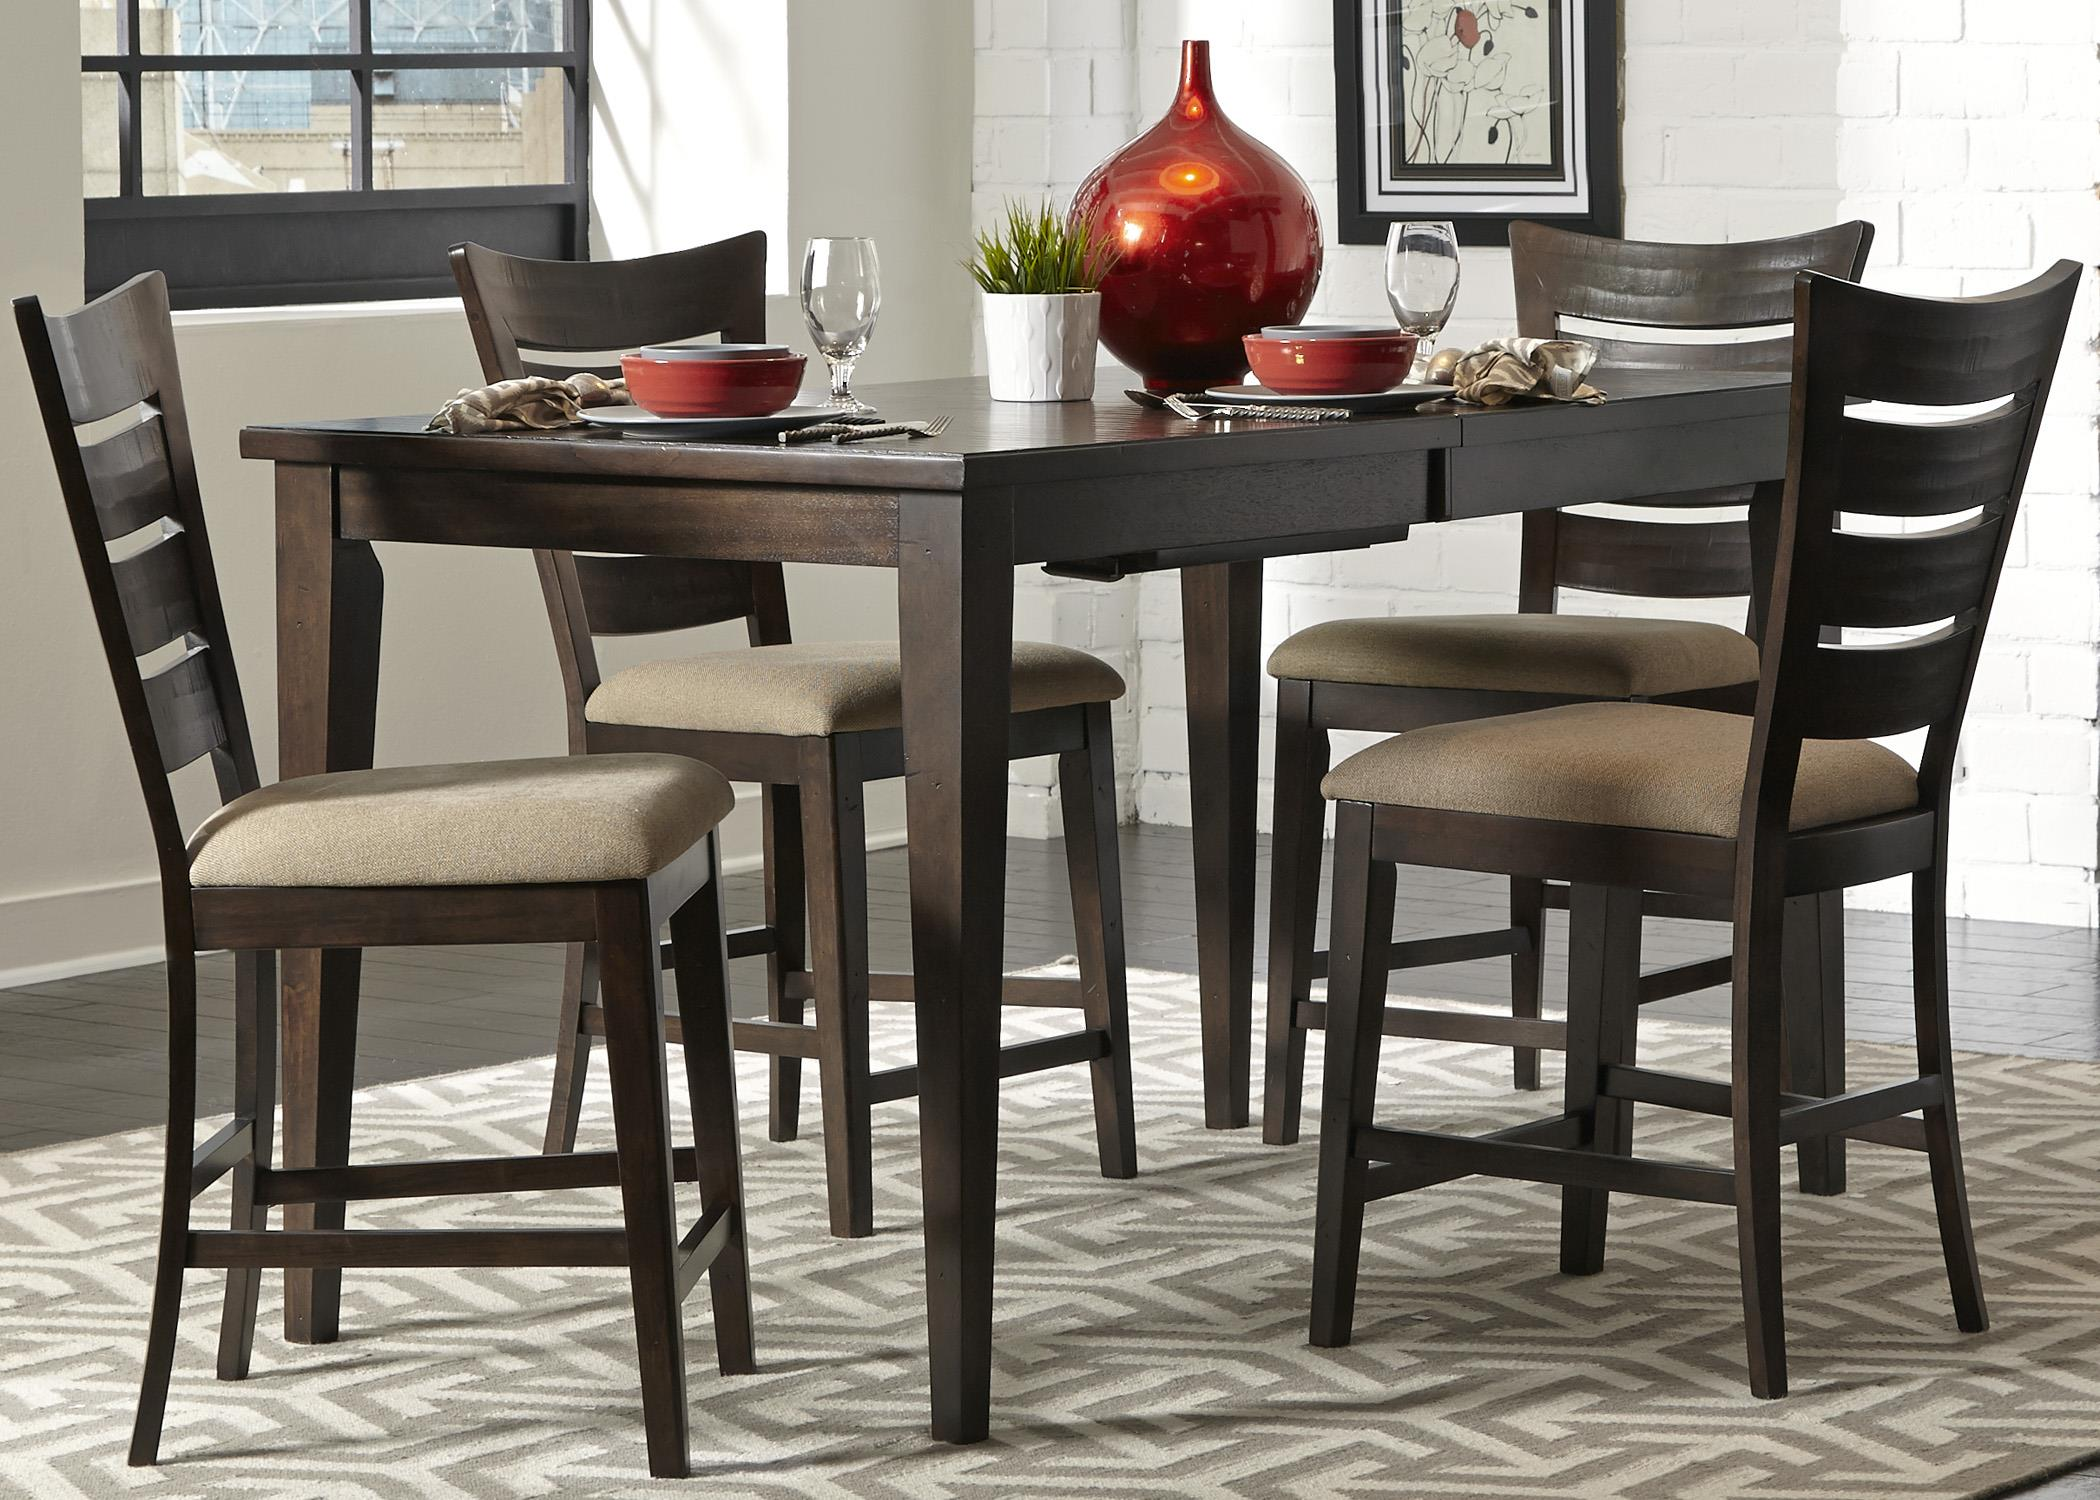 Liberty Furniture Pebble Creek 5 Piece Gathering Table Set - Item Number: 476-CD-5GTS